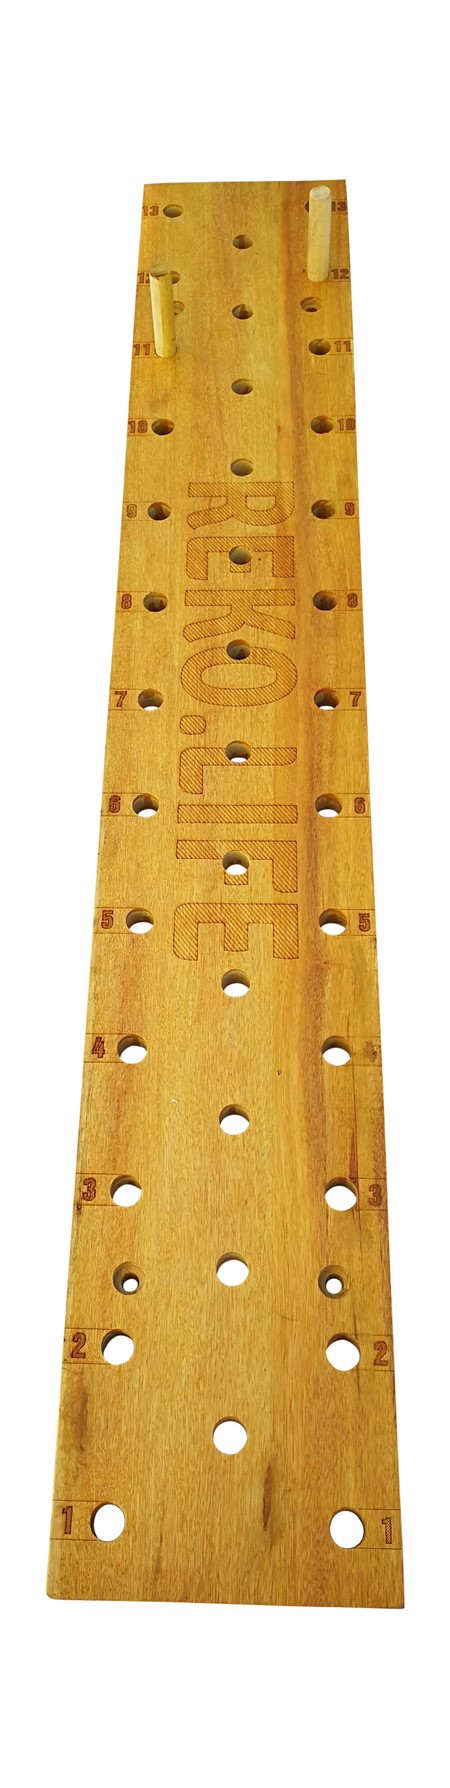 Peg Board - Trä